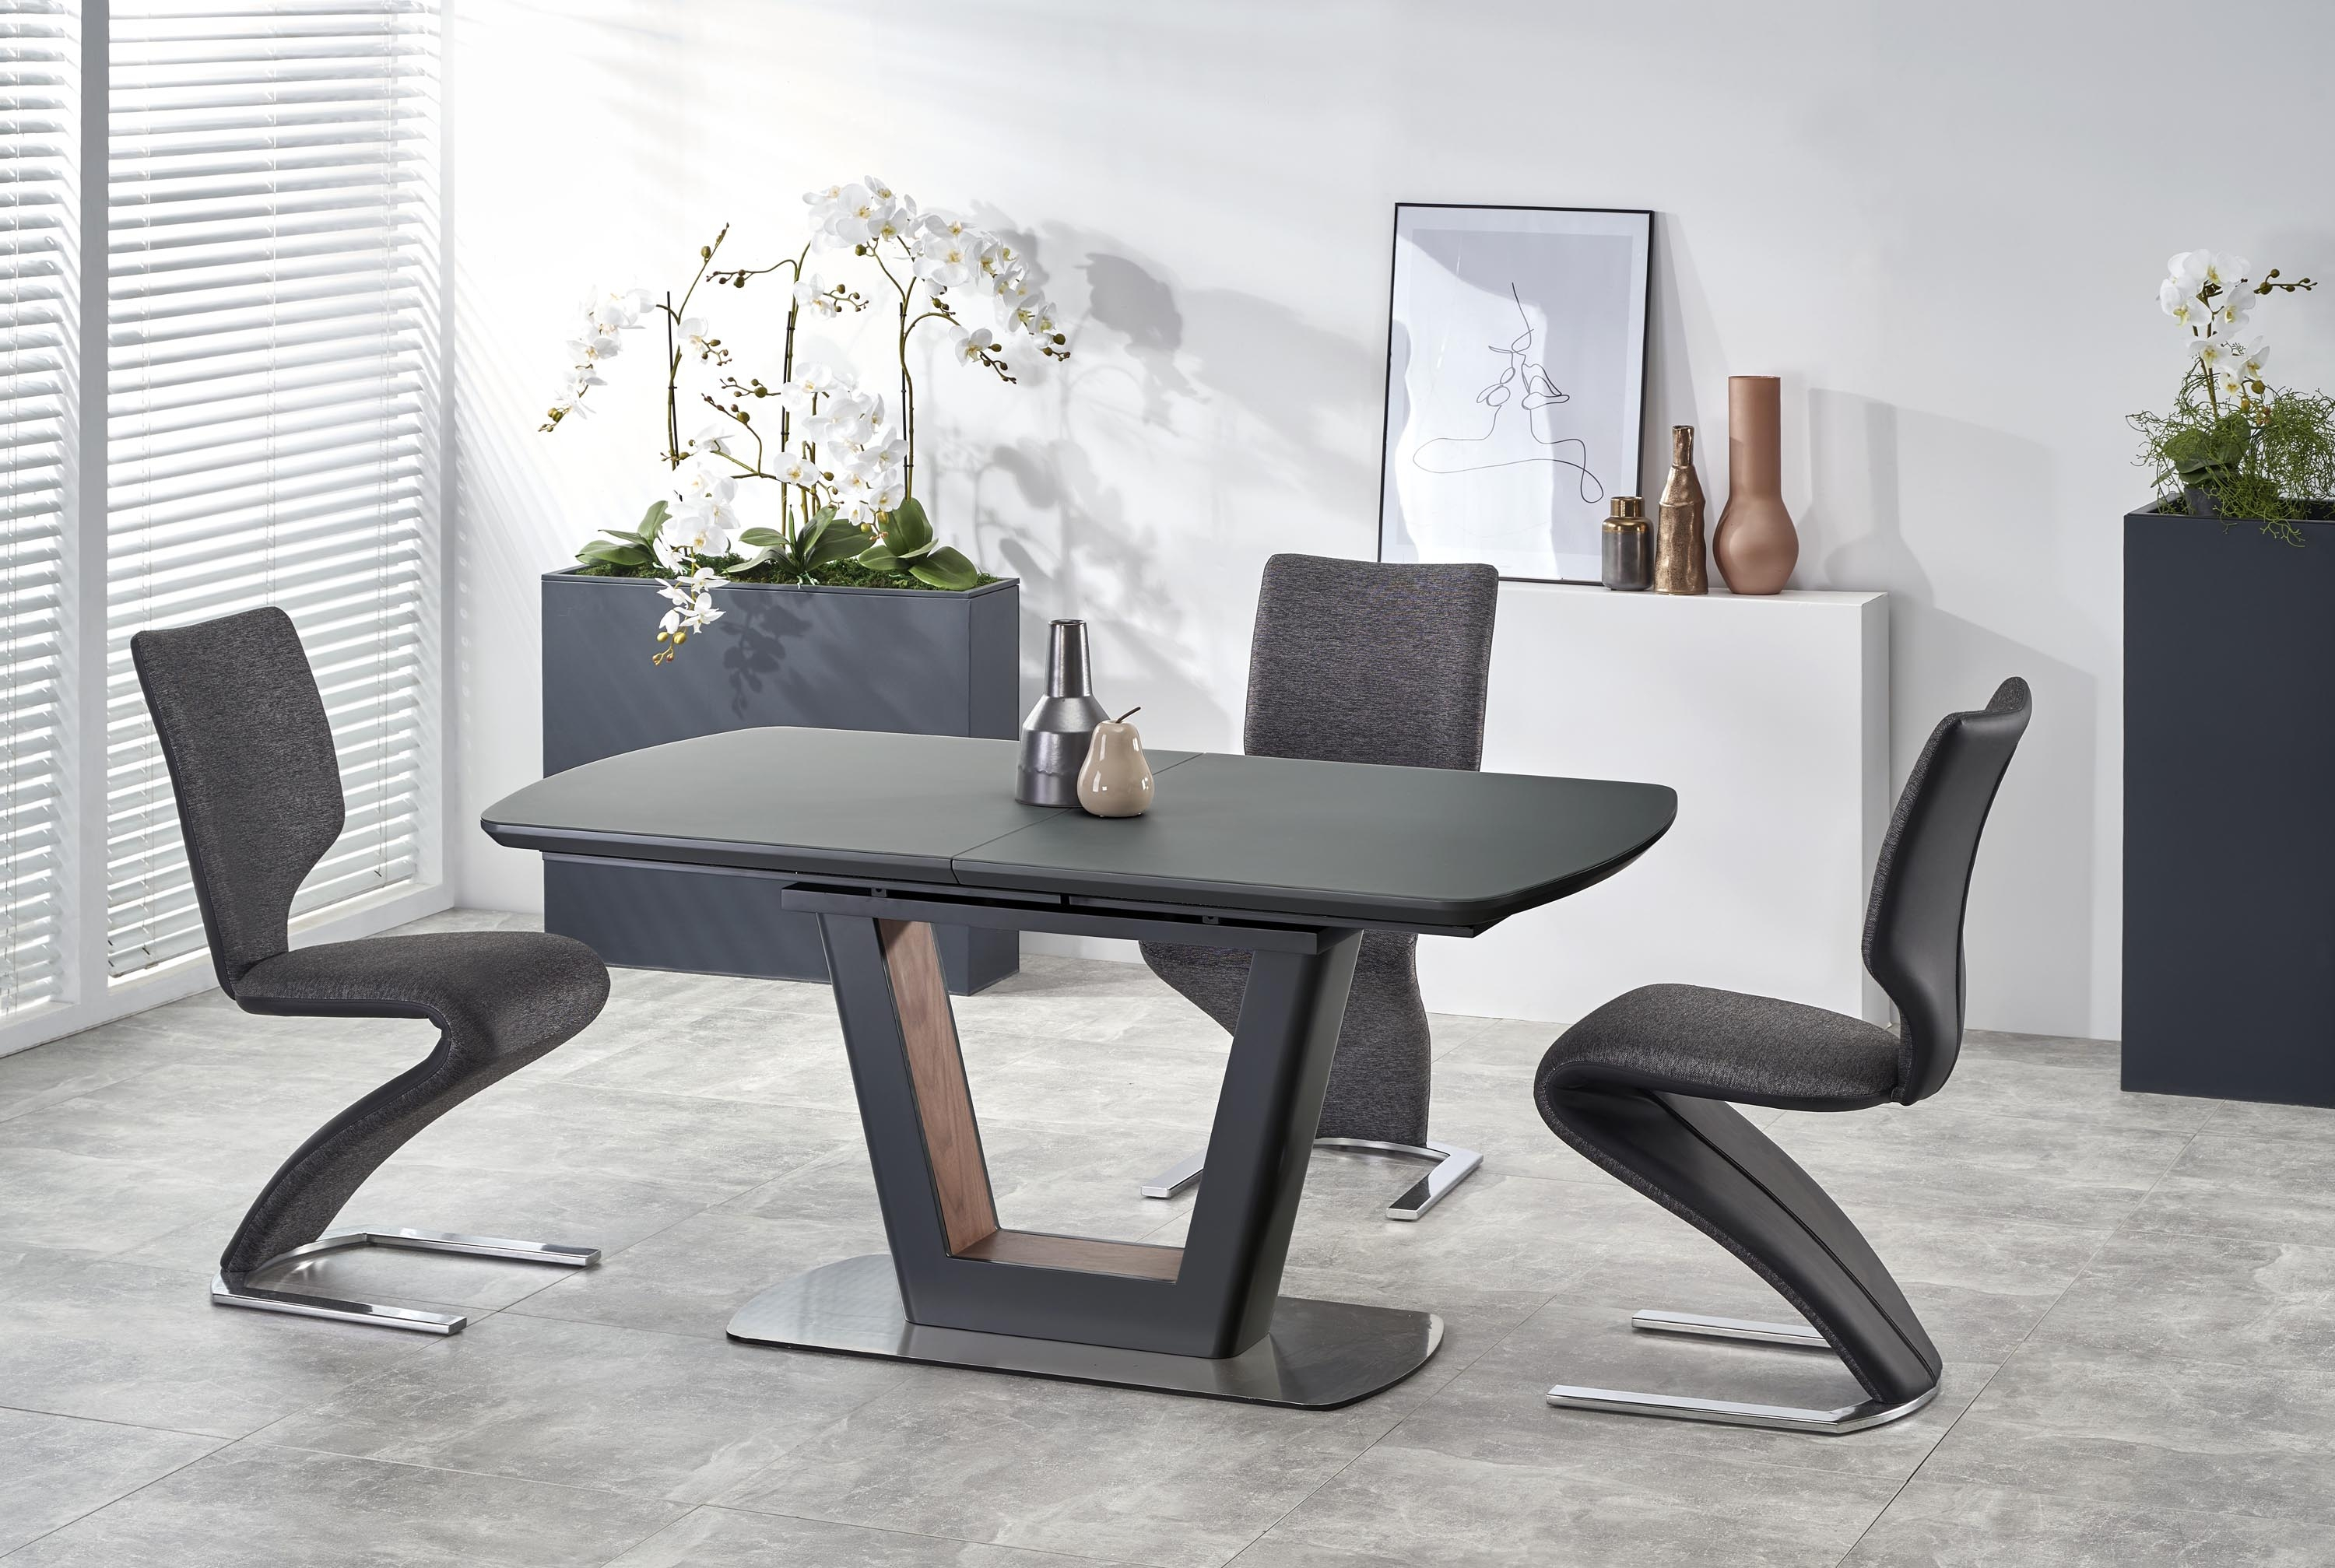 Masa extensibila din sticla si MDF Bilotti Anthracite / Walnut, L160-200xl90xH76 cm imagine